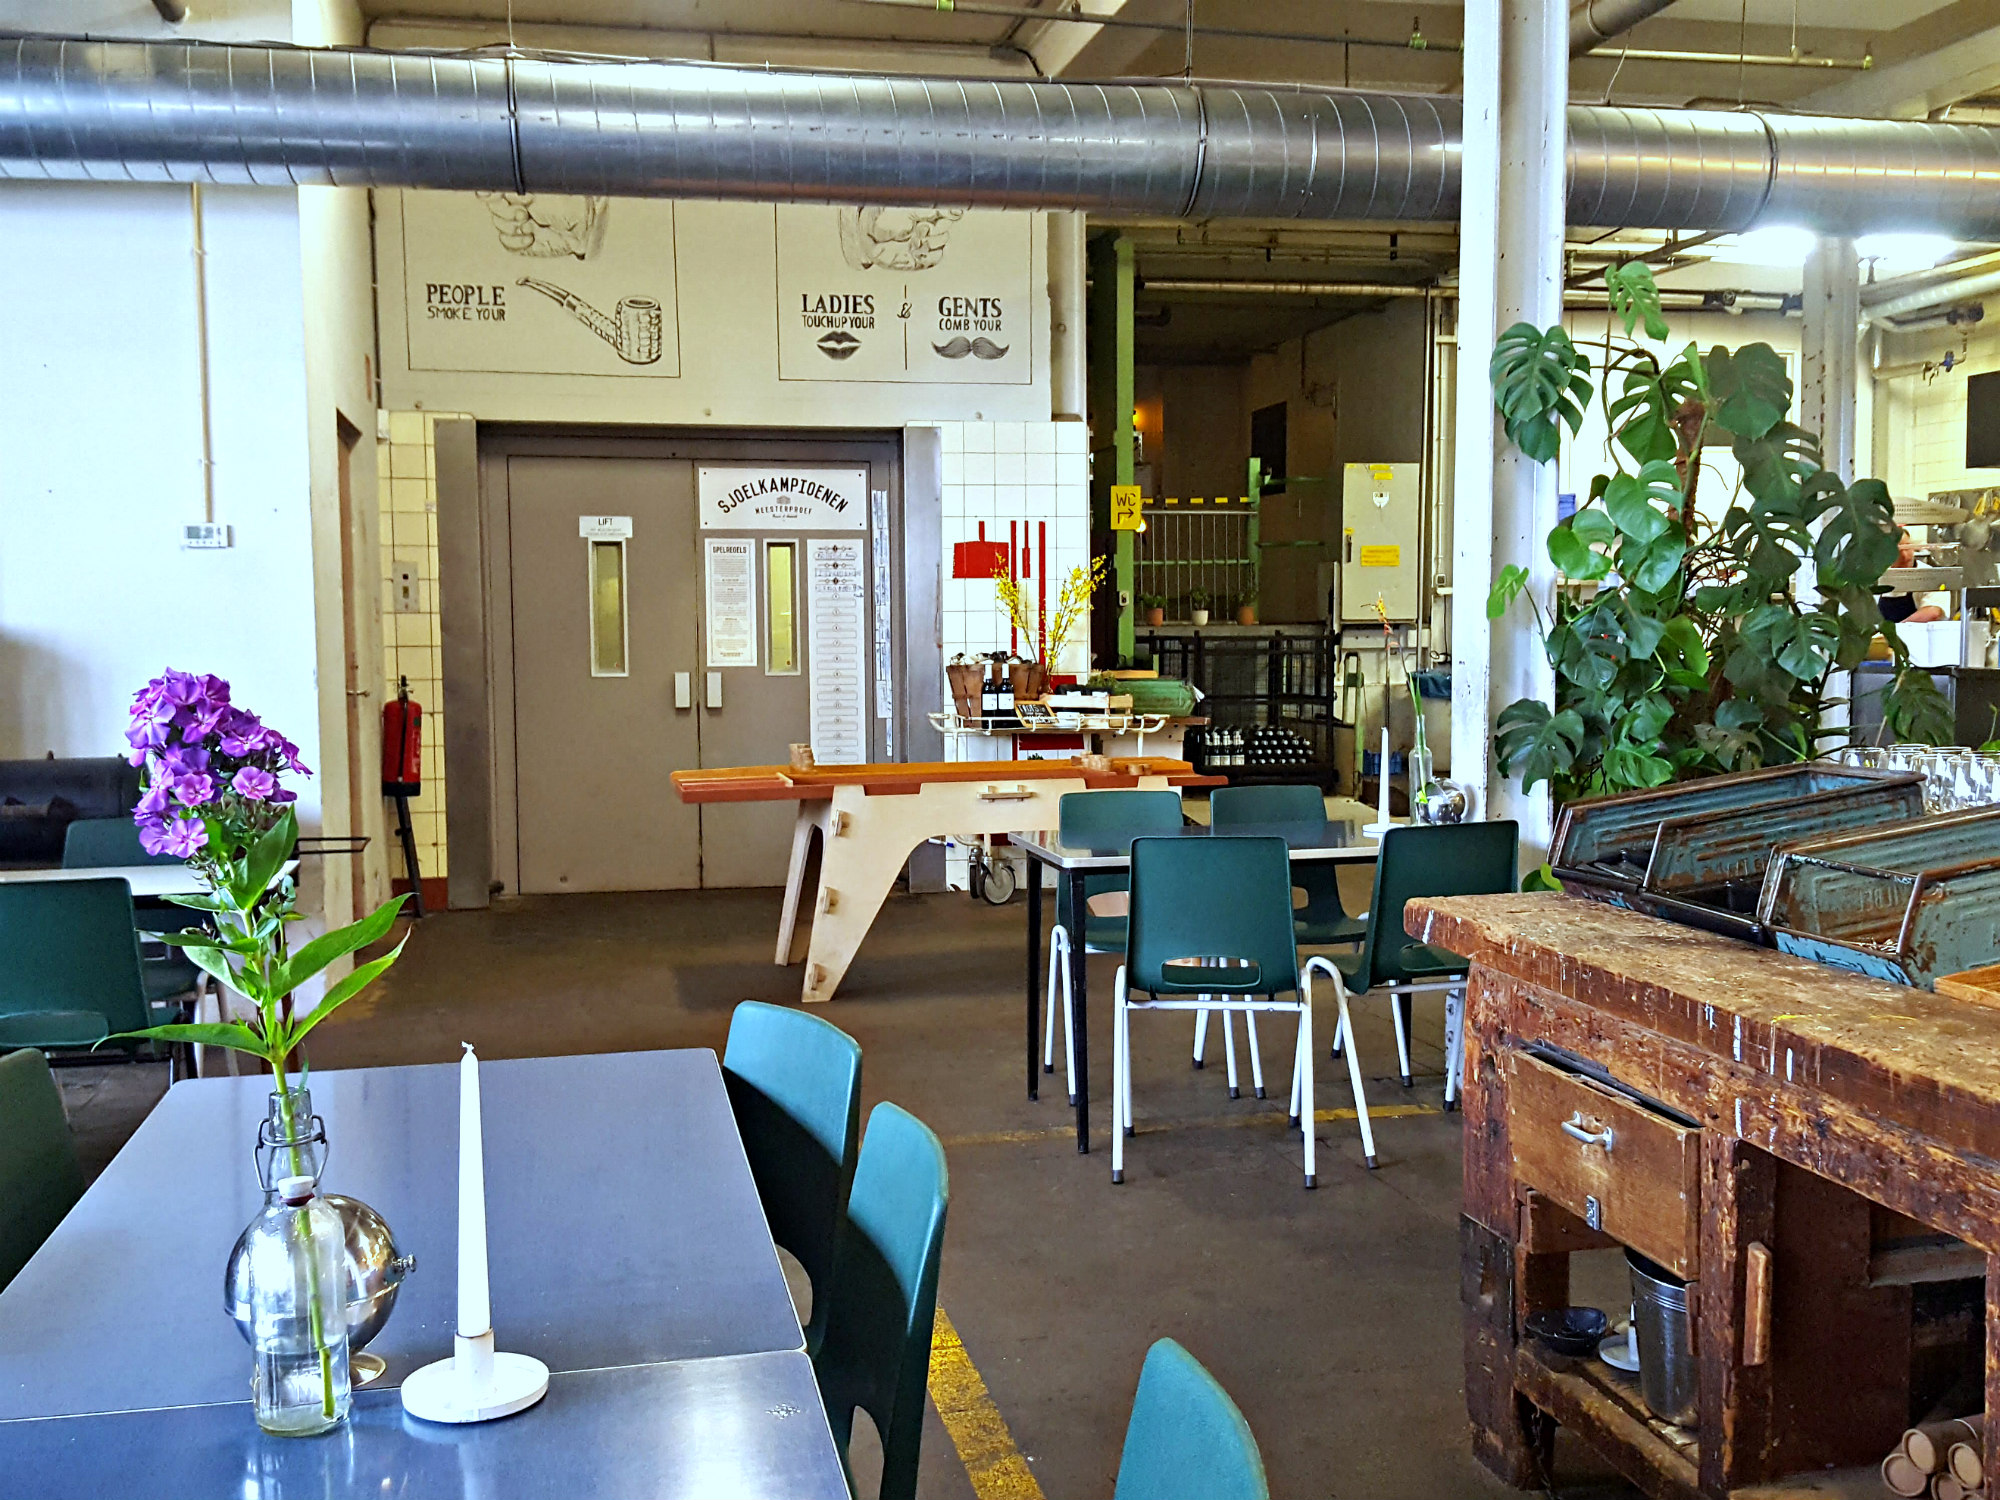 Afbeelding Industrieel Interieur Lunchen Bij Meesterproef Industrieel Interieur All Lovely Things